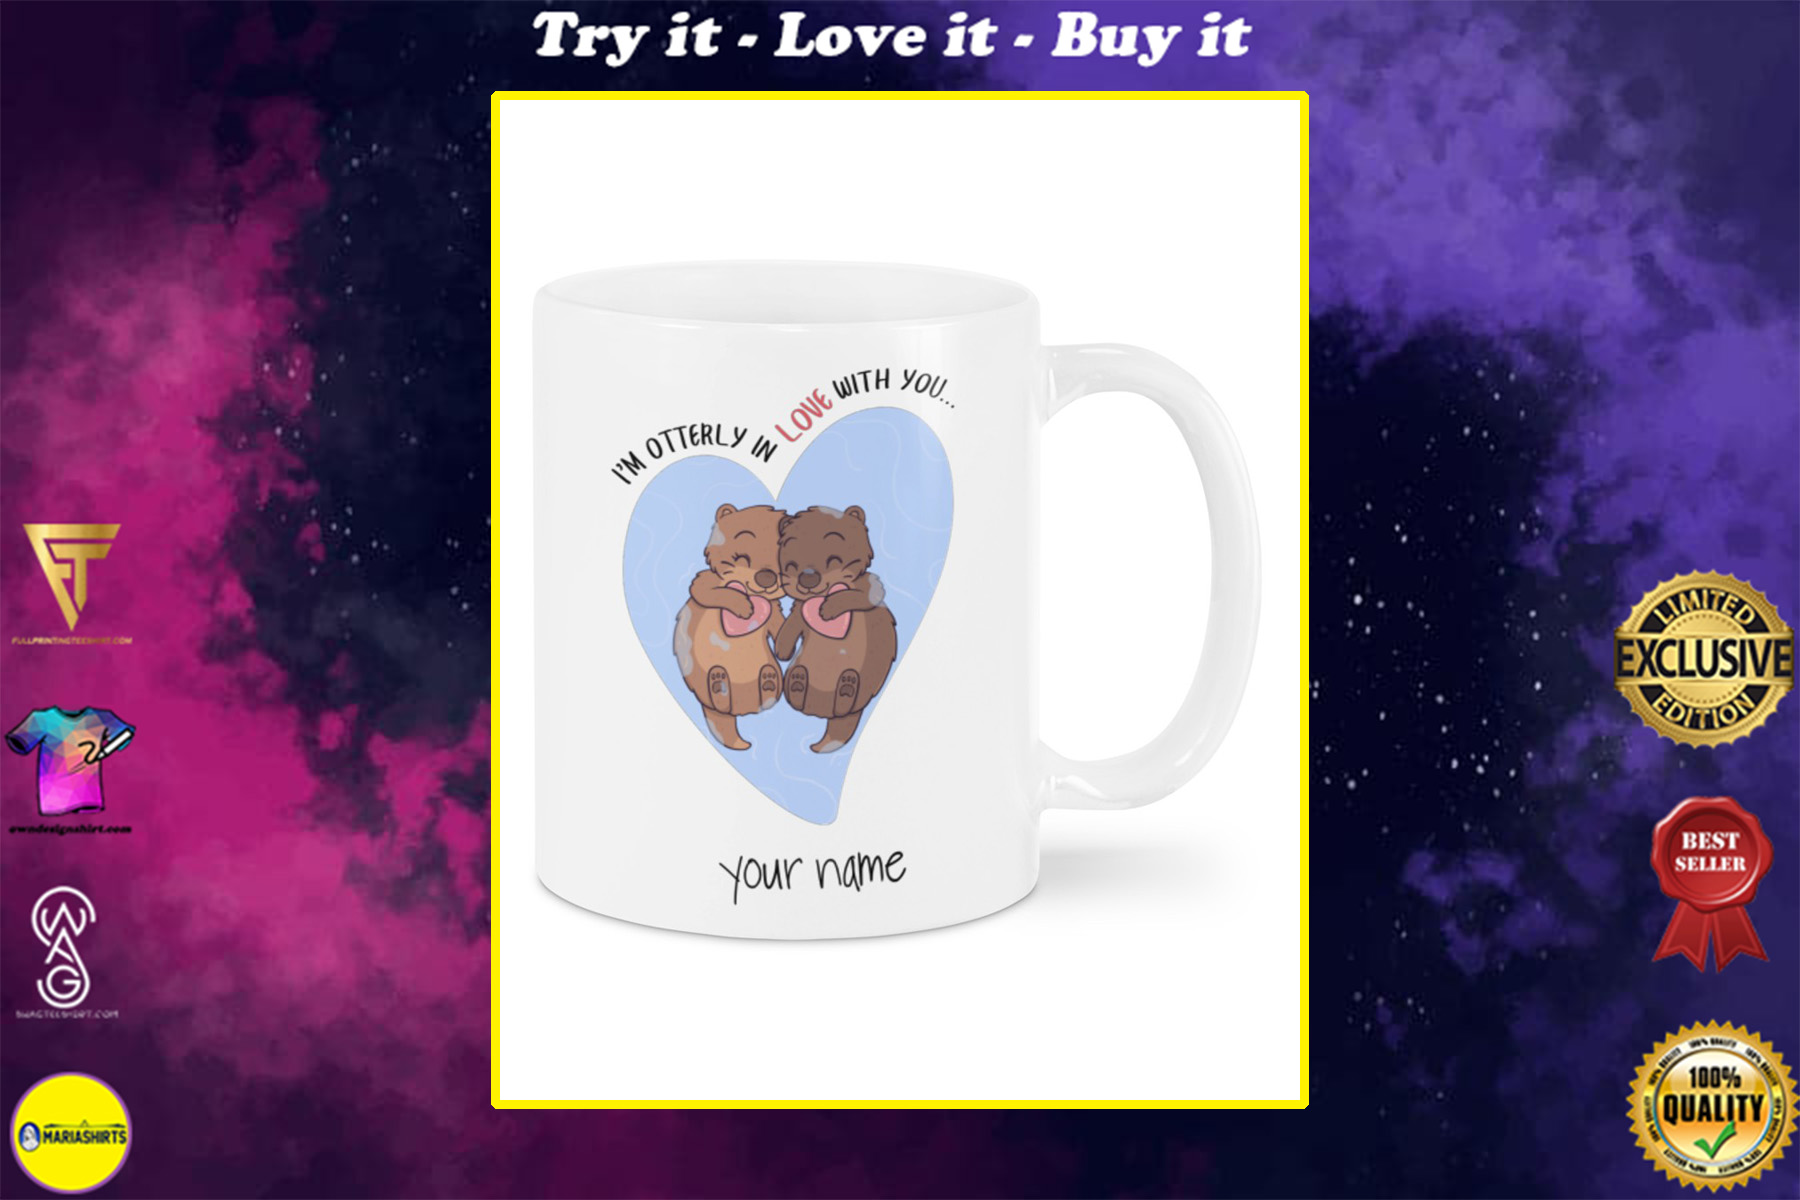 i'm otterly in love with you custom your name mug